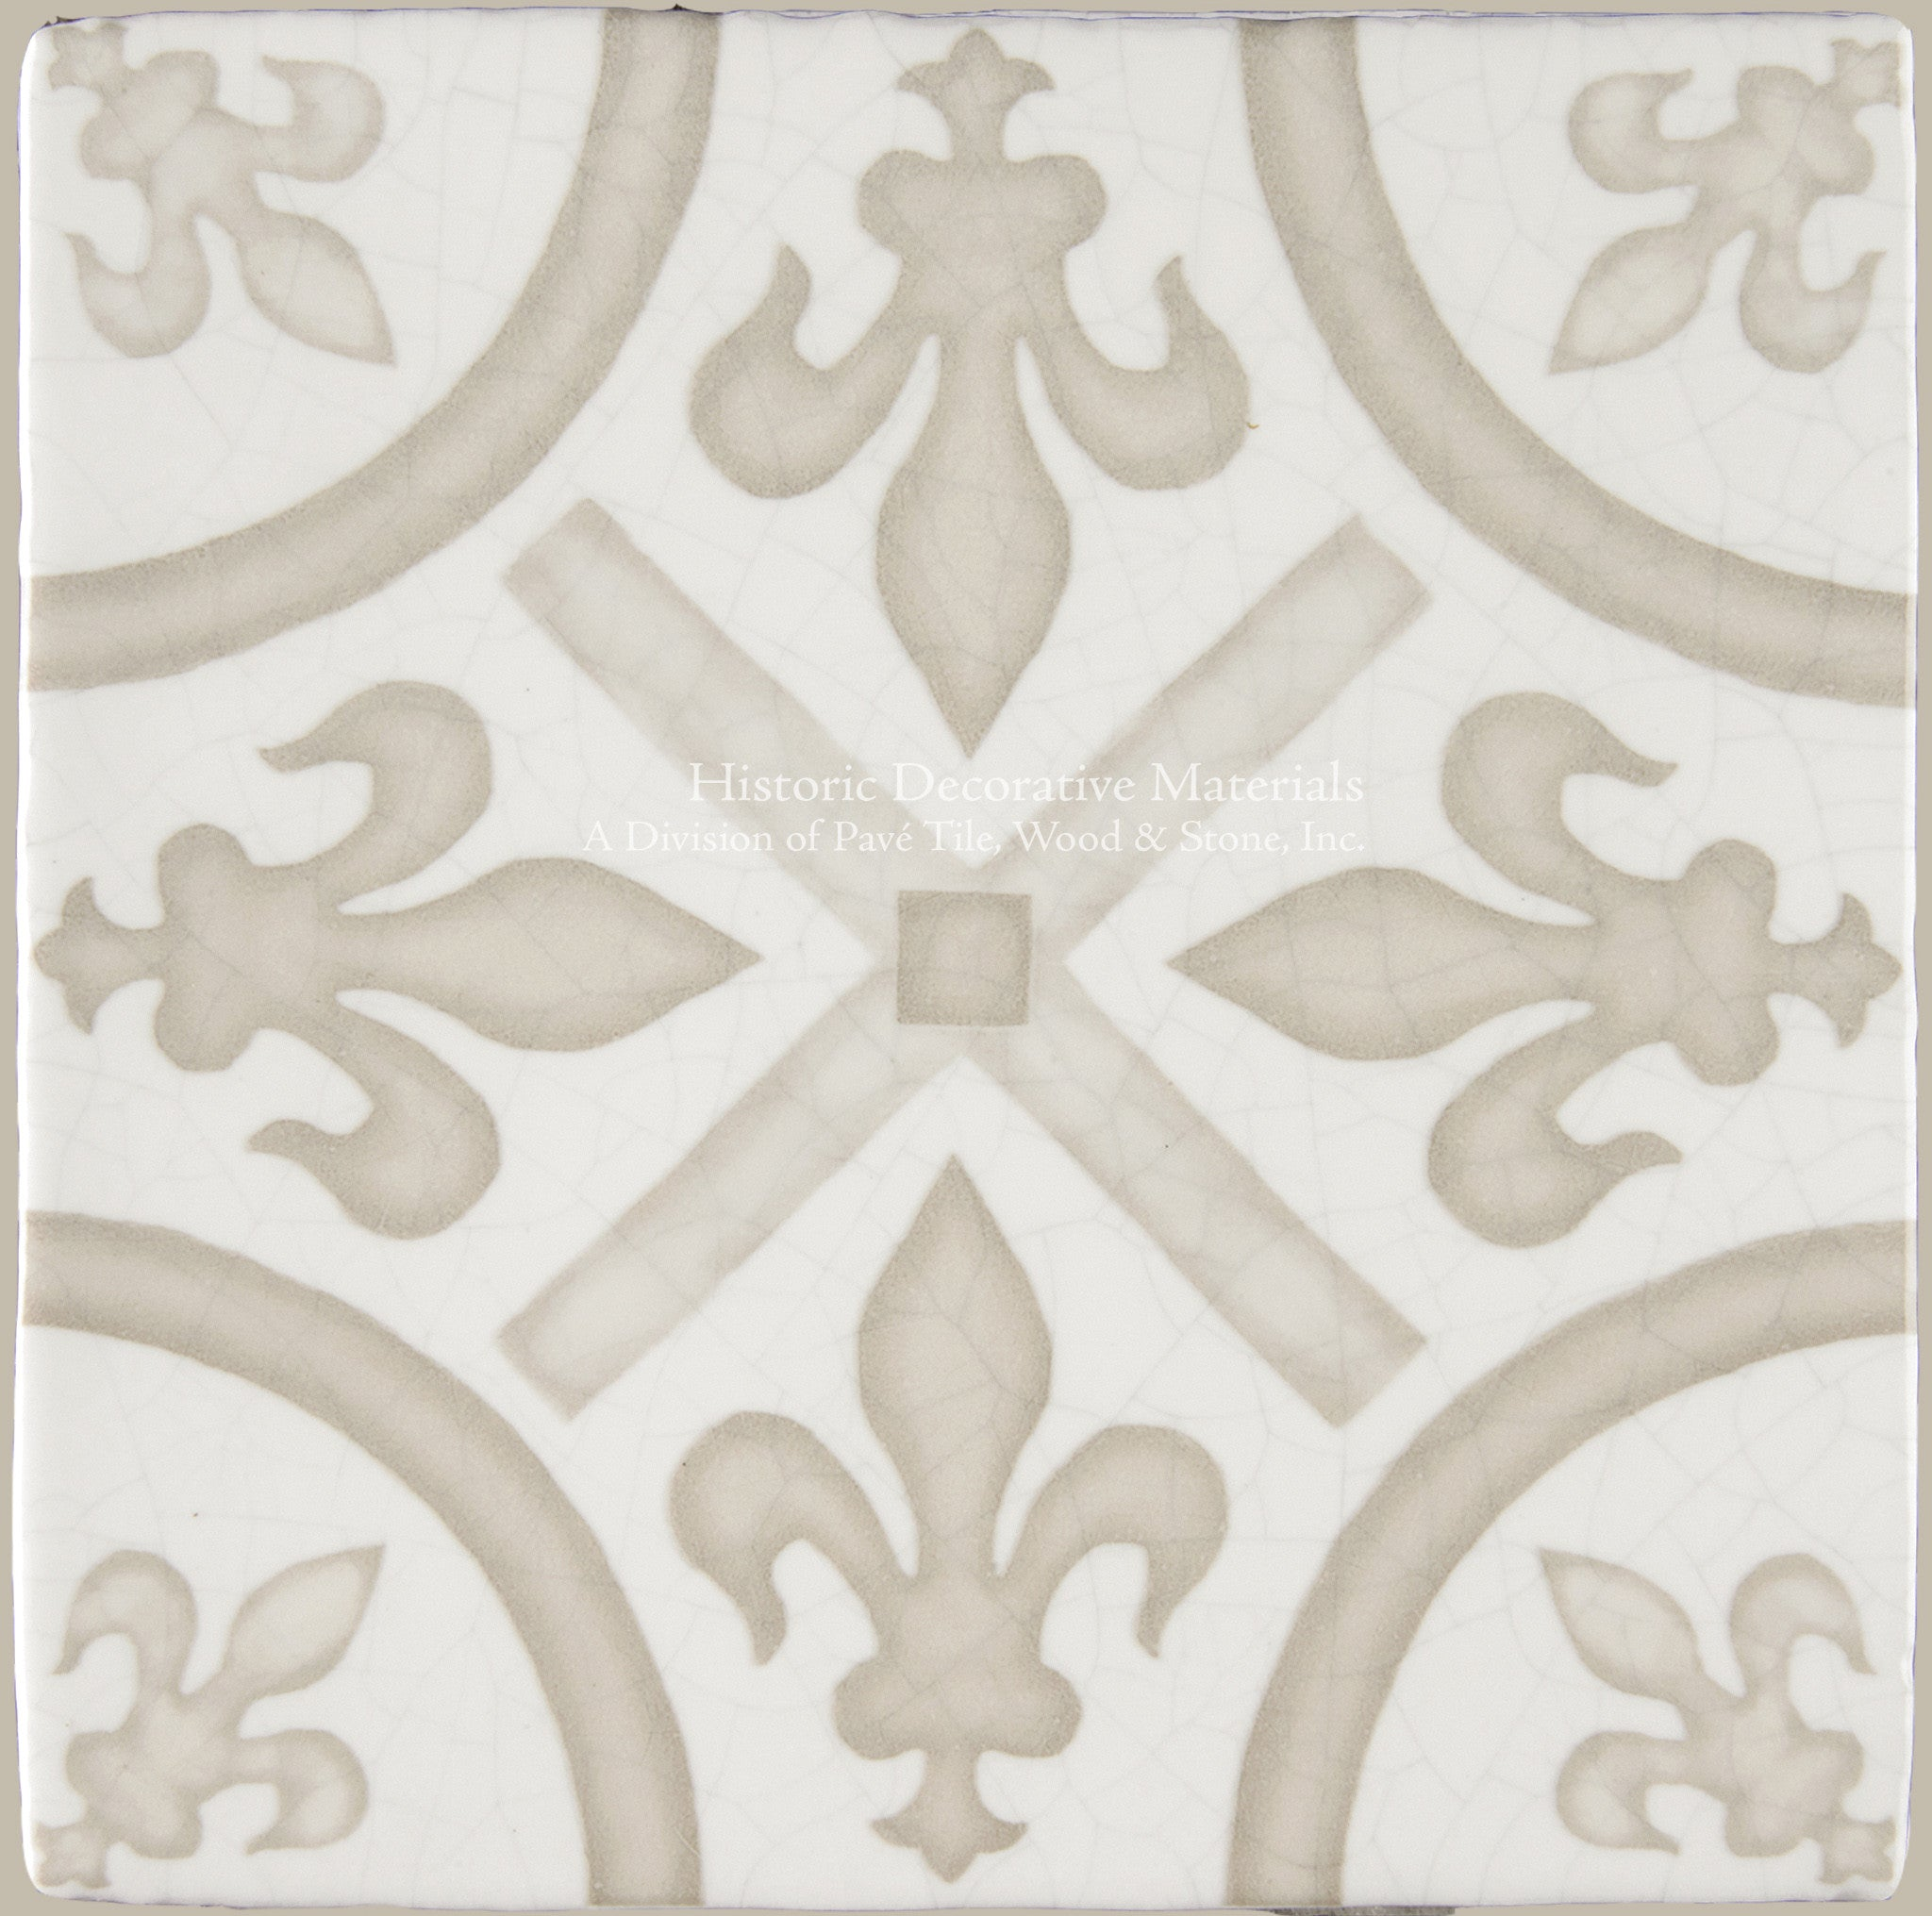 French Decorative Wall Tiles For Kitchen Backsplash And Fireplace